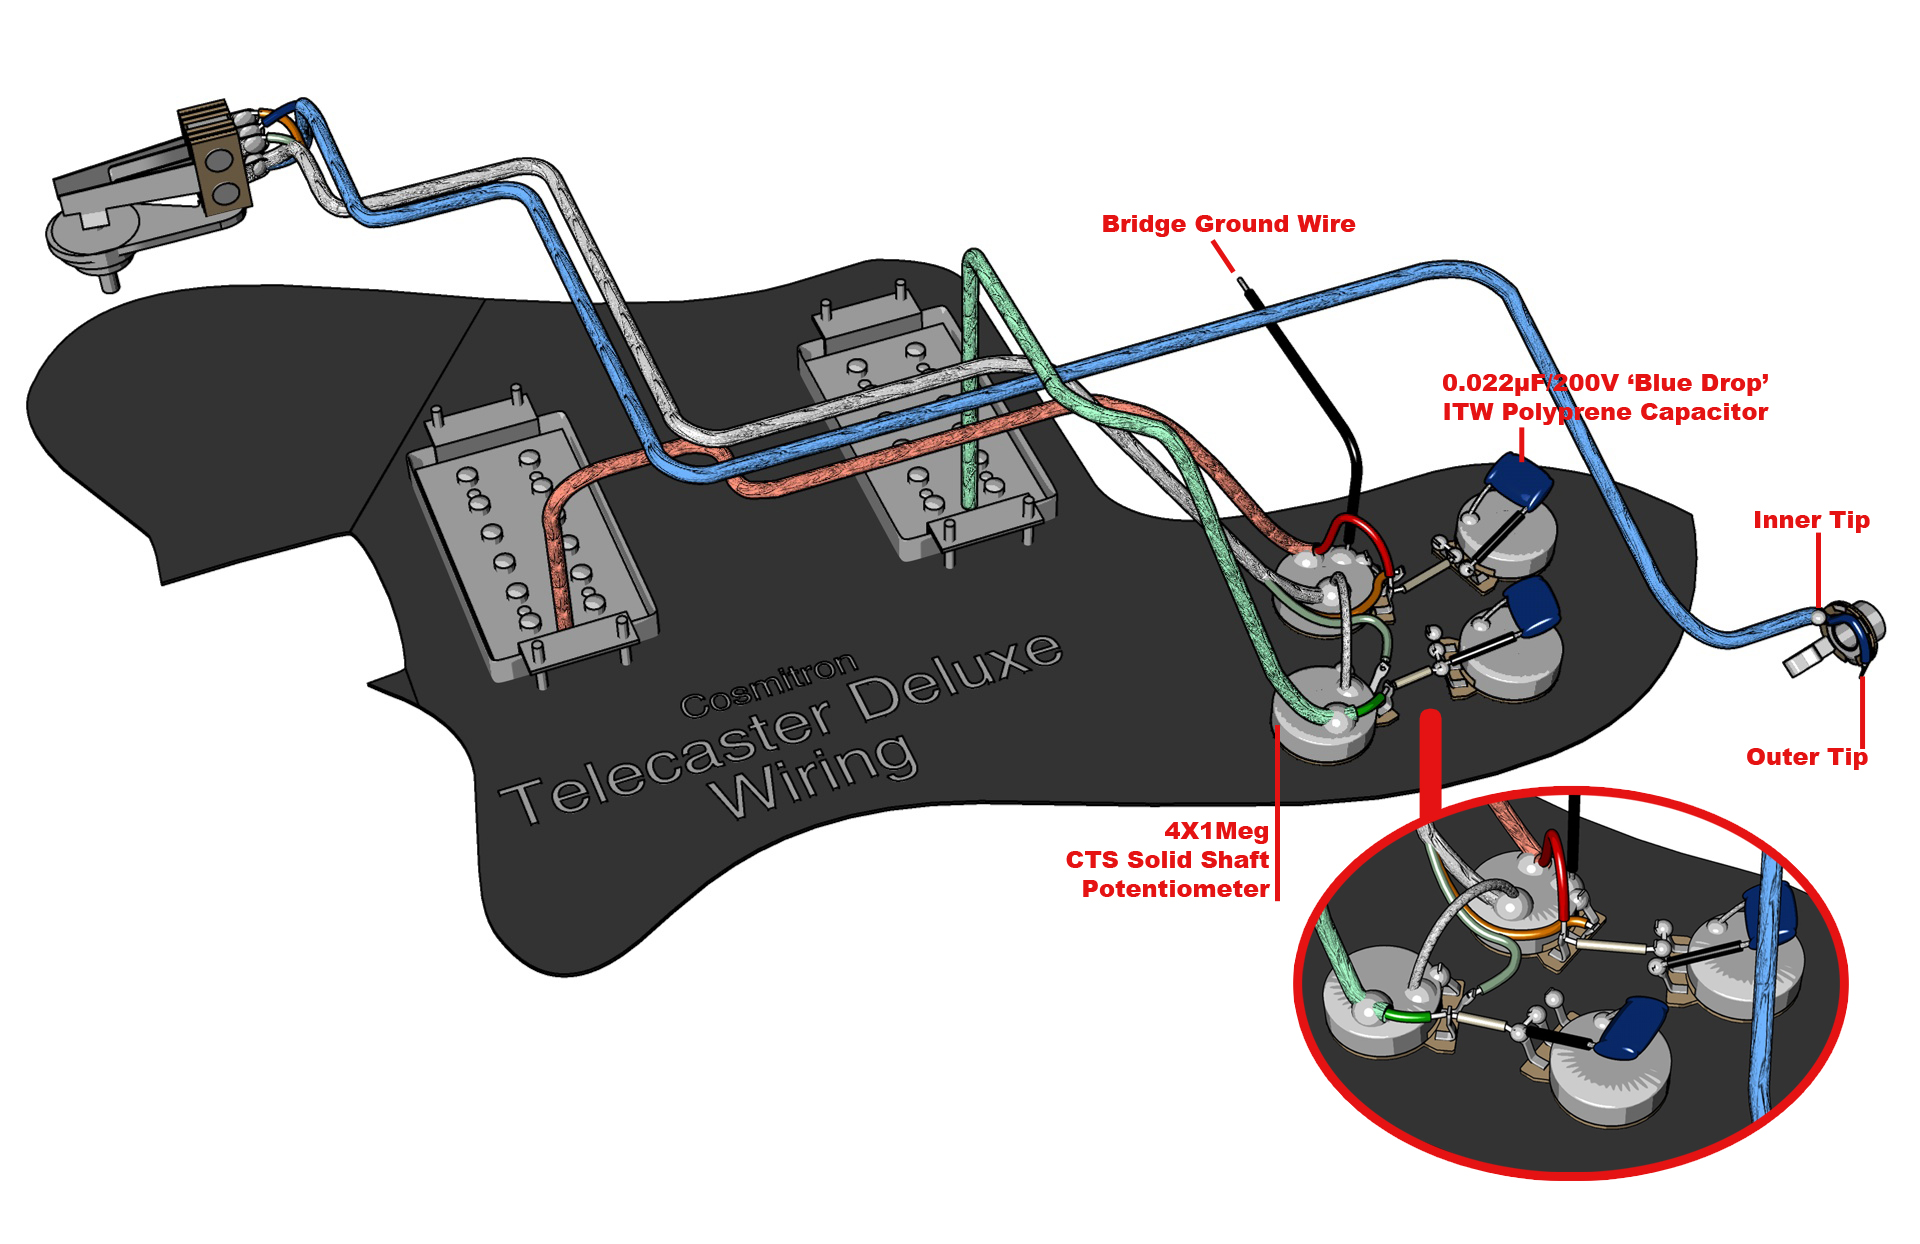 TLDX wiring c ilovefuzz com \u2022 view topic 72ri tele deluxe re wire upgrade project telecaster deluxe wiring diagram at alyssarenee.co